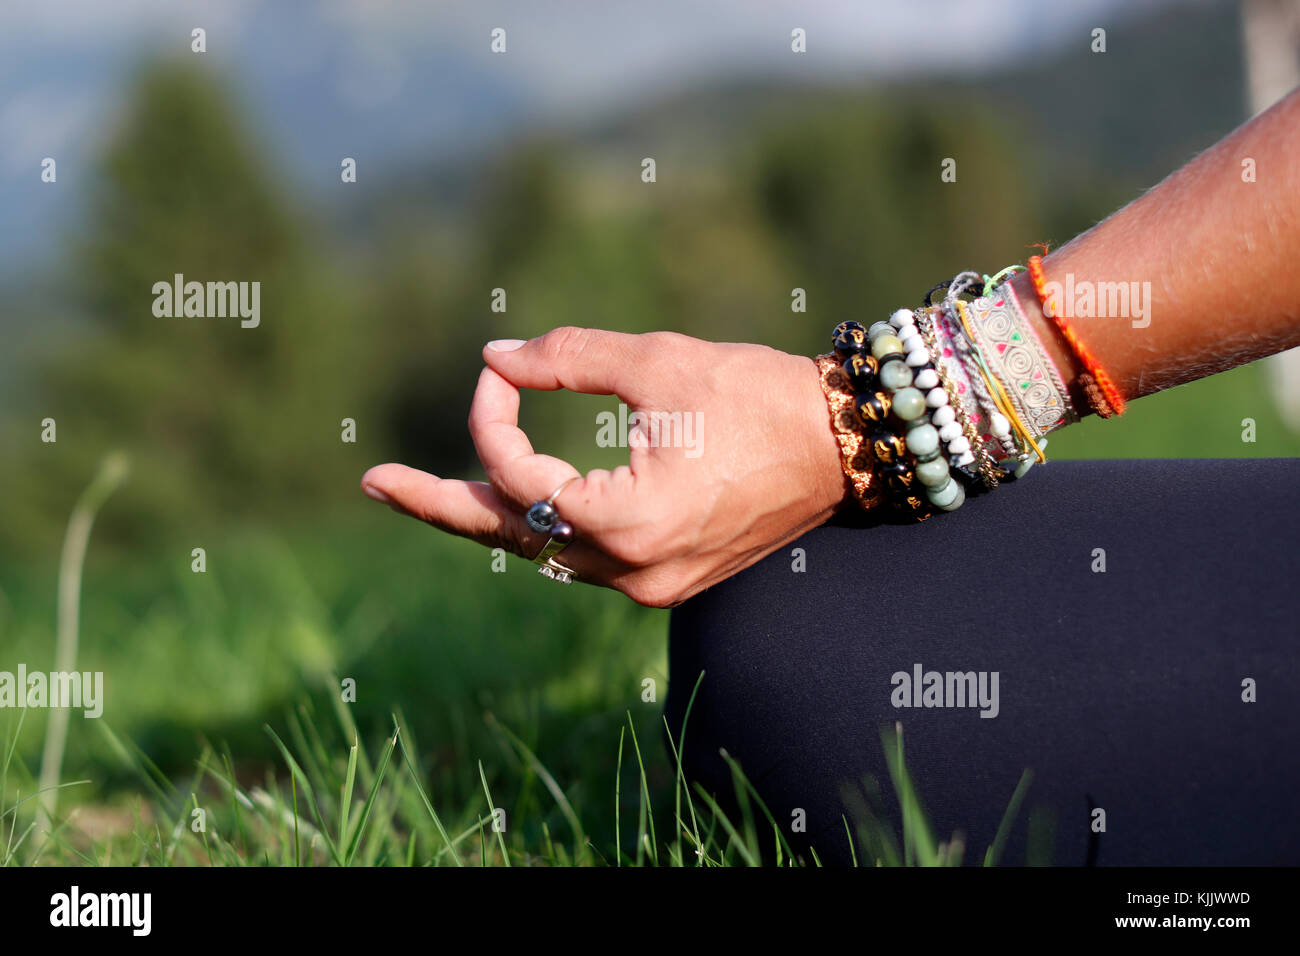 Woman sitting with her legs crossed and hand resting on knee. Mudra posture. Close-up.  France. - Stock Image